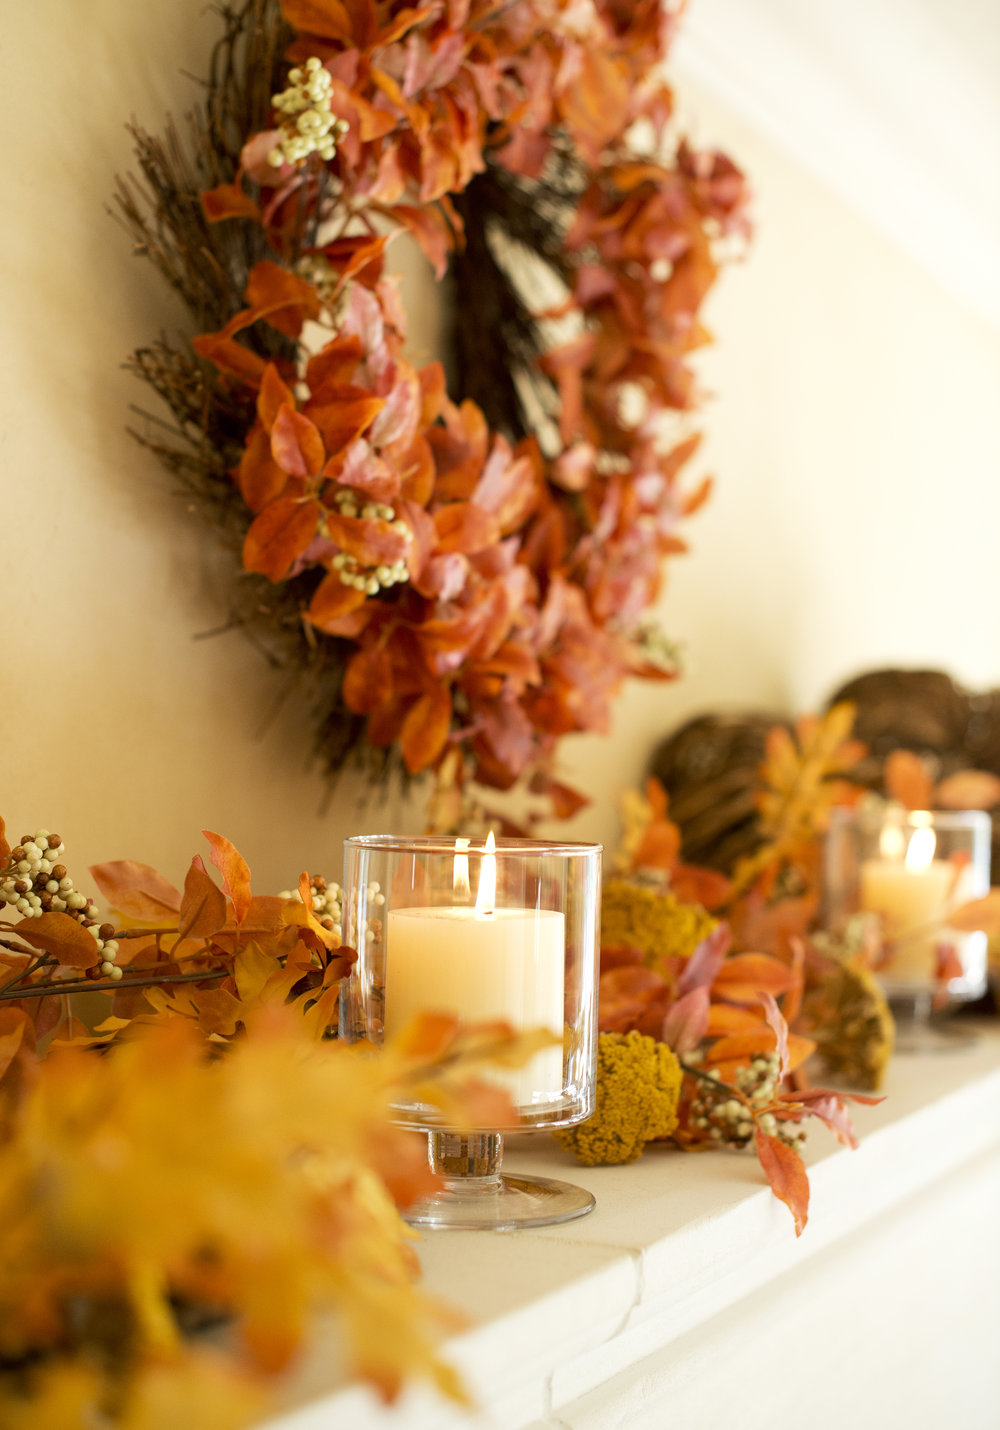 My Splendid Living- Rustic Fall Fireplace inspiration!